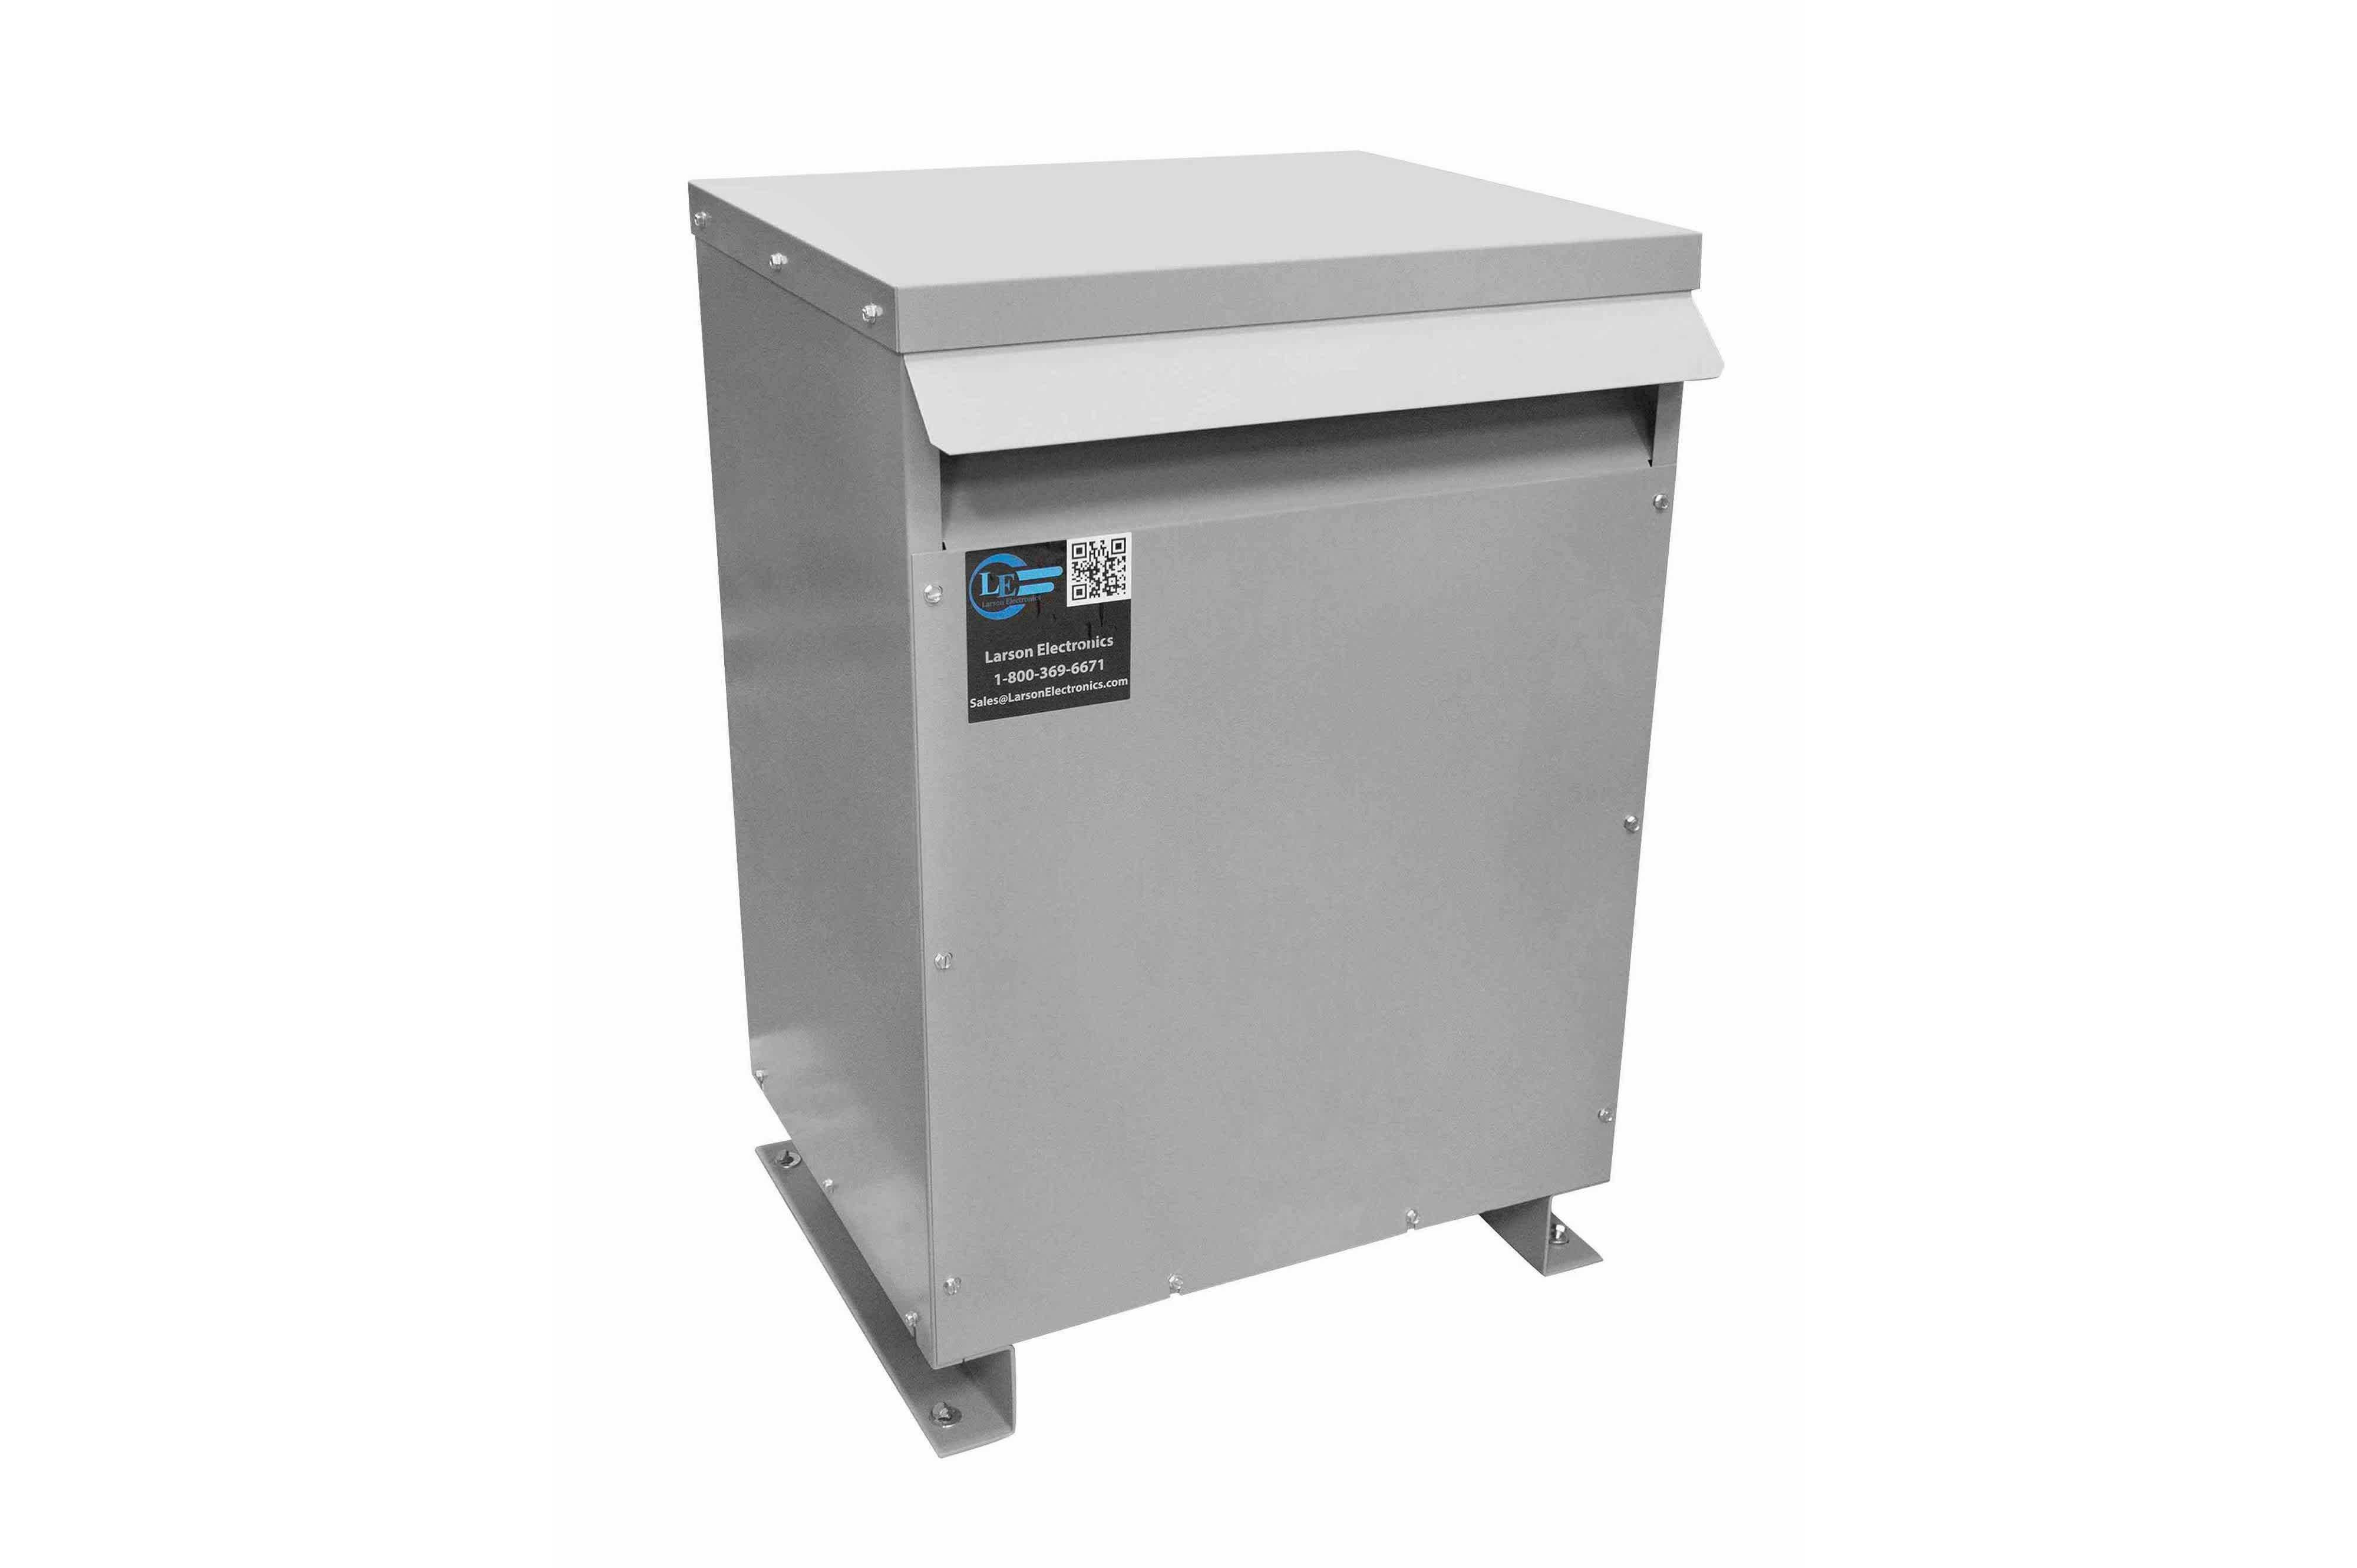 29 kVA 3PH Isolation Transformer, 600V Wye Primary, 415Y/240 Wye-N Secondary, N3R, Ventilated, 60 Hz